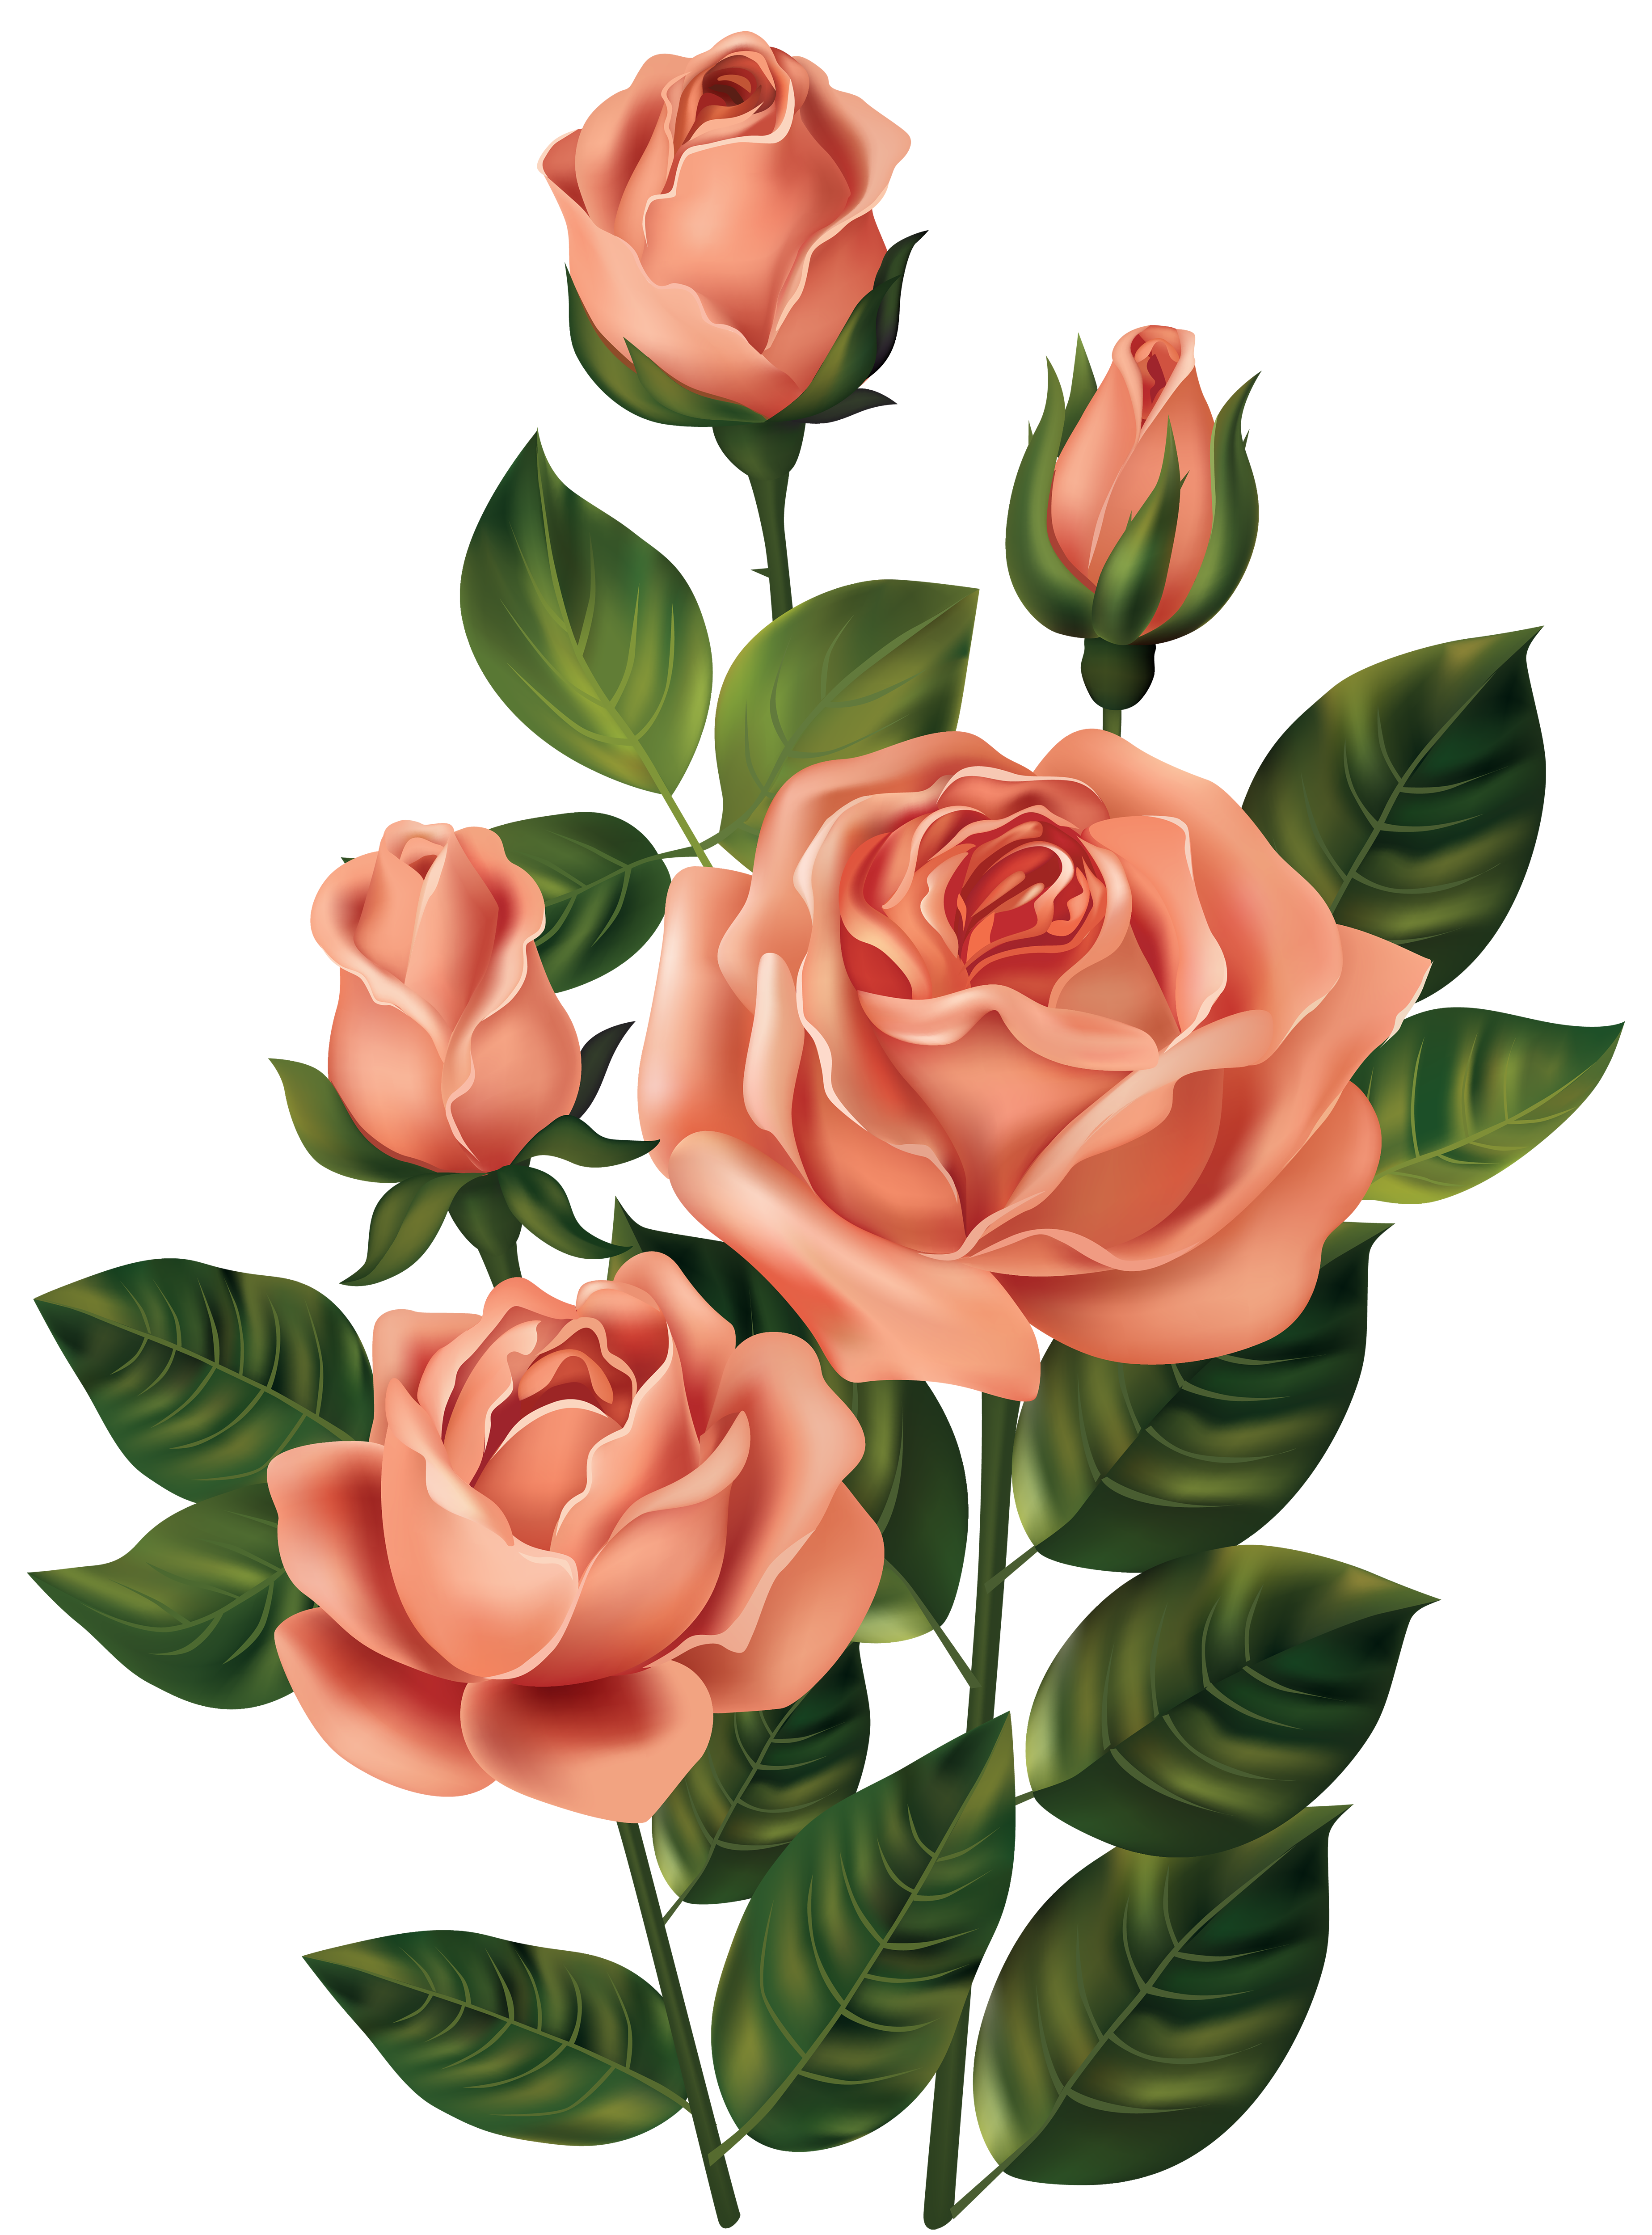 Roses_PNG_Clipart_Image-455354616.png (3696×5000) | розы | Pinterest ... banner freeuse library